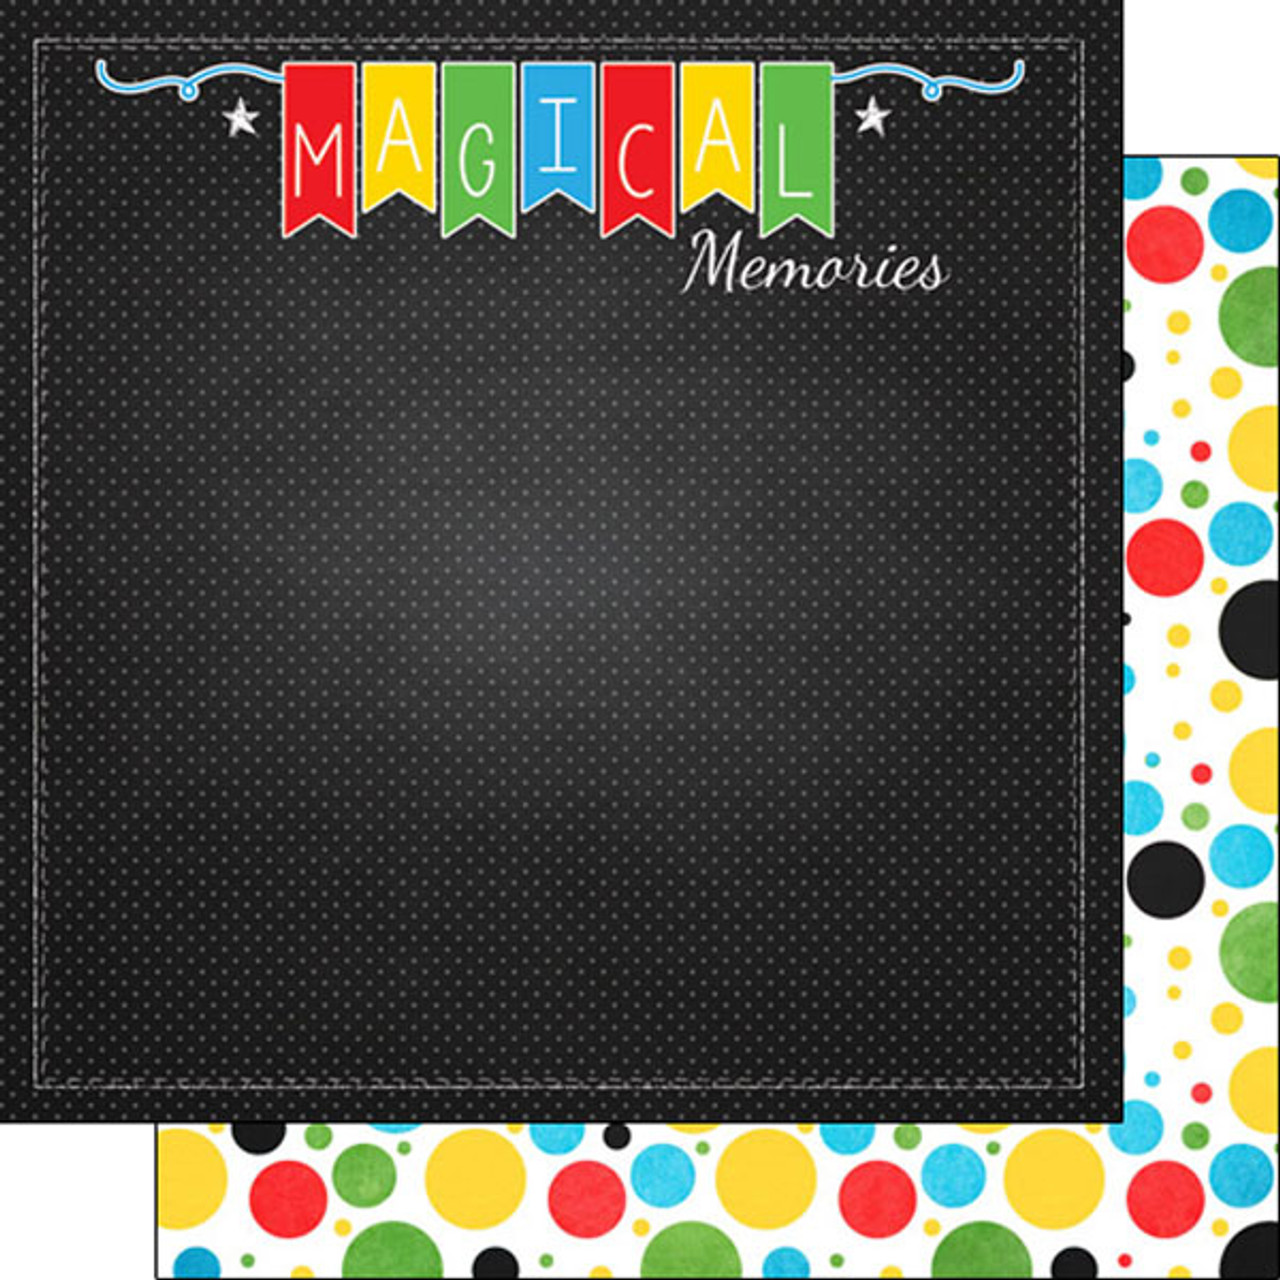 Magical Day of Fun Collection Magical Memories Dots 12 x 12 Double-Sided Scrapbook Paper by Scrapbook Customs